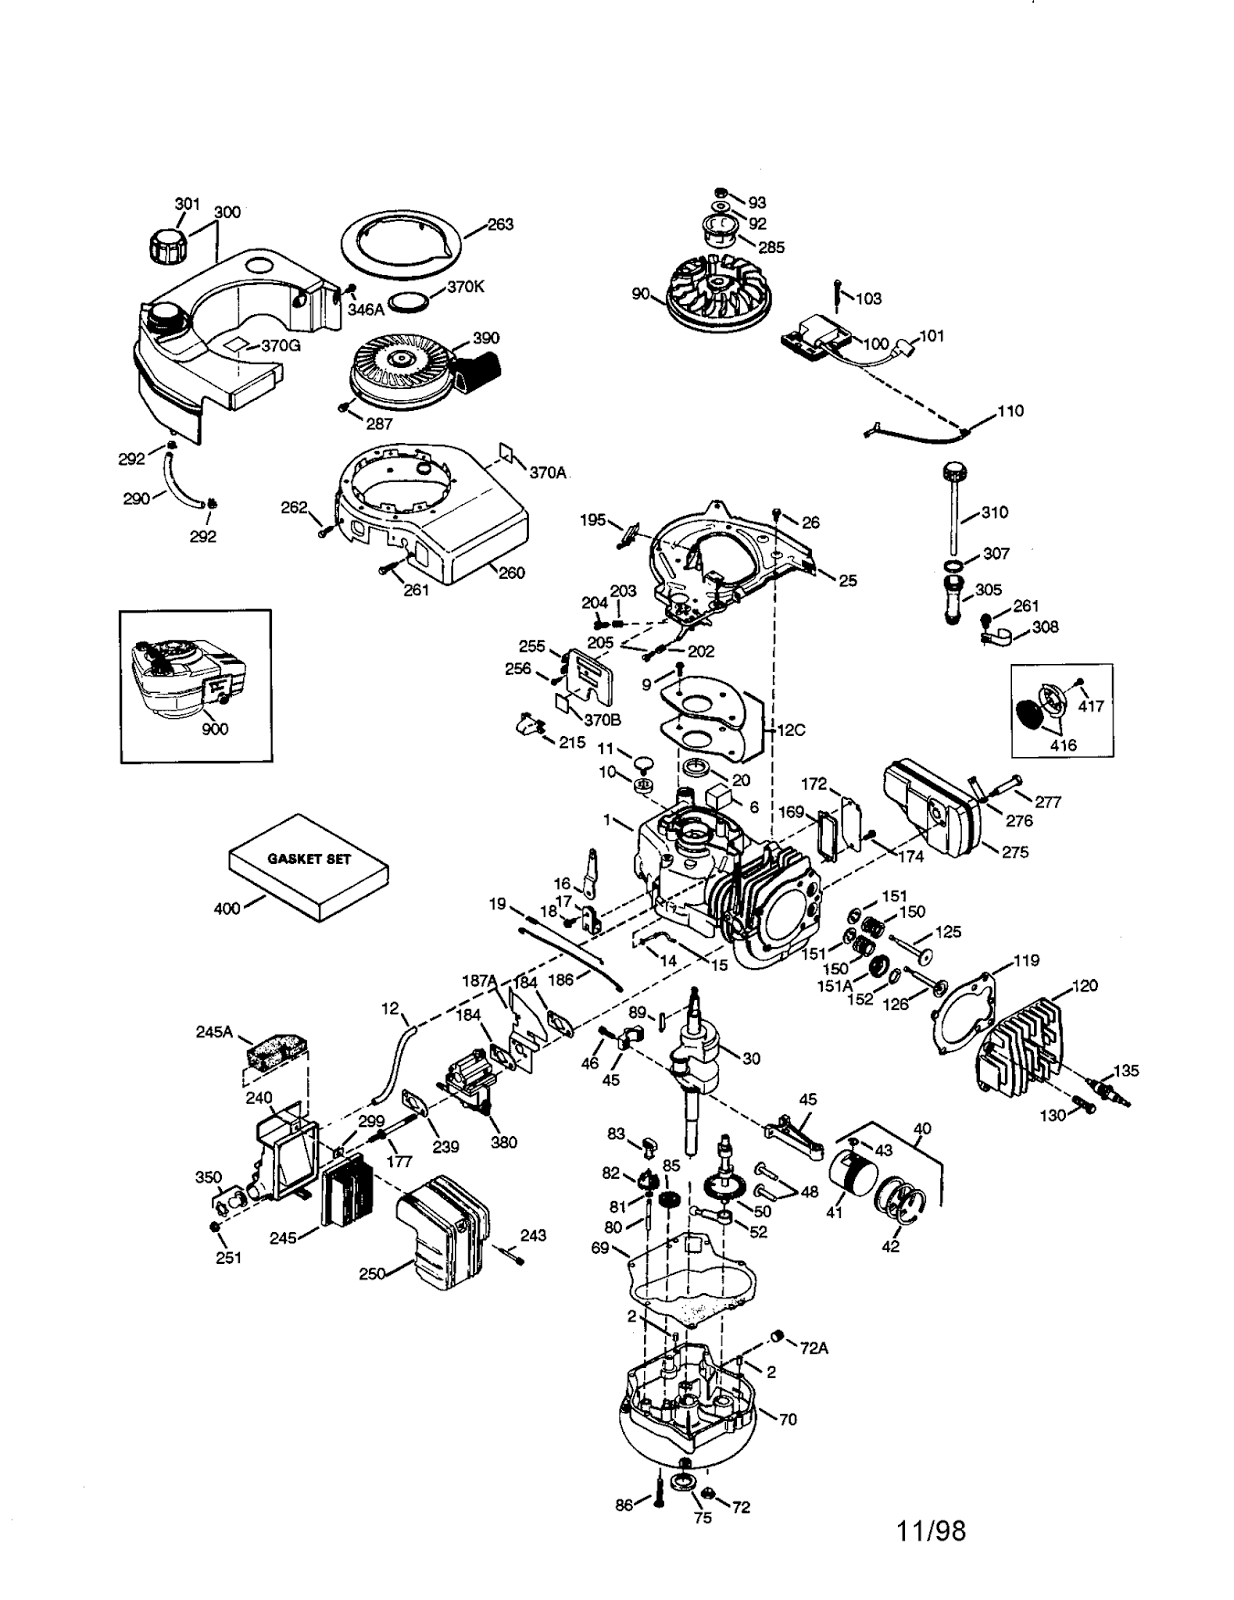 1995 lincoln continental wiring diagram pdf with 2013 Honda Rancher Service Manual on 7 3 Powerstroke Fuel Lines in addition Keywords Toyota Radio Wiring Diagram likewise 1990 50 Hp 3 Cylinder Yamaha Outboard Wiring Diagram additionally Wiring Diagrams 95 Lincoln Mark Viii in addition 2004 Chevy Tahoe Repair Manual.